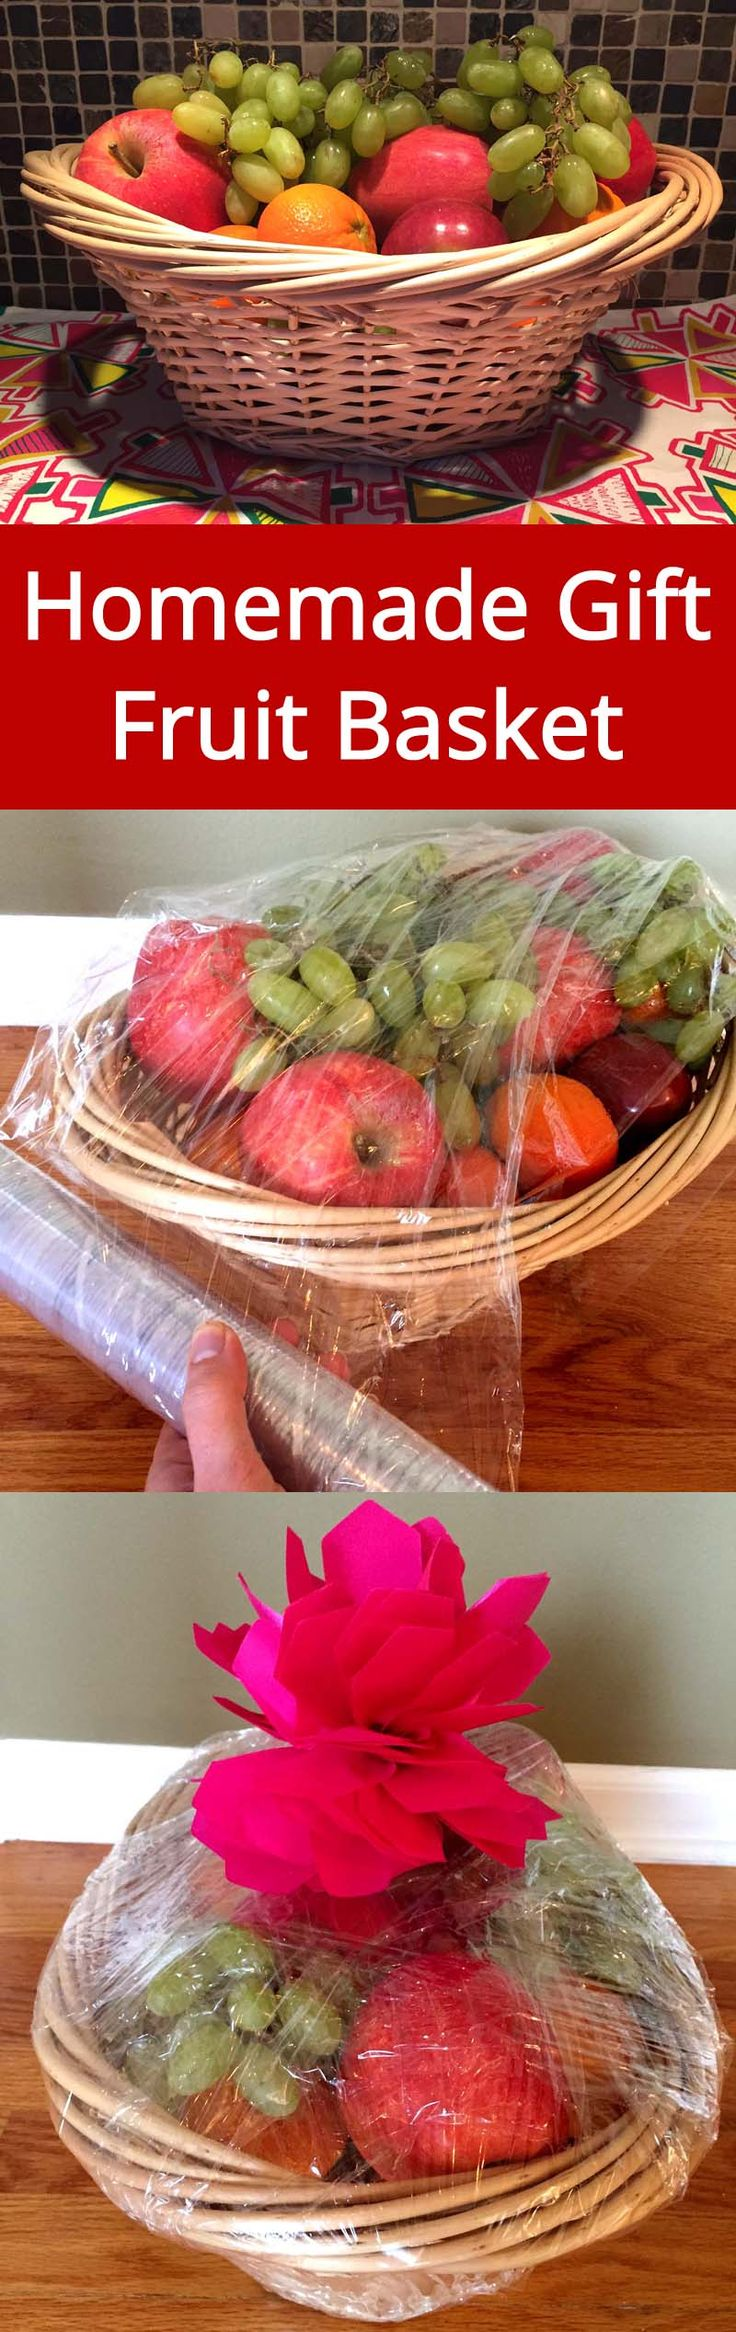 How To Make A Flower Fruit Basket : Best ideas about fruit gifts on